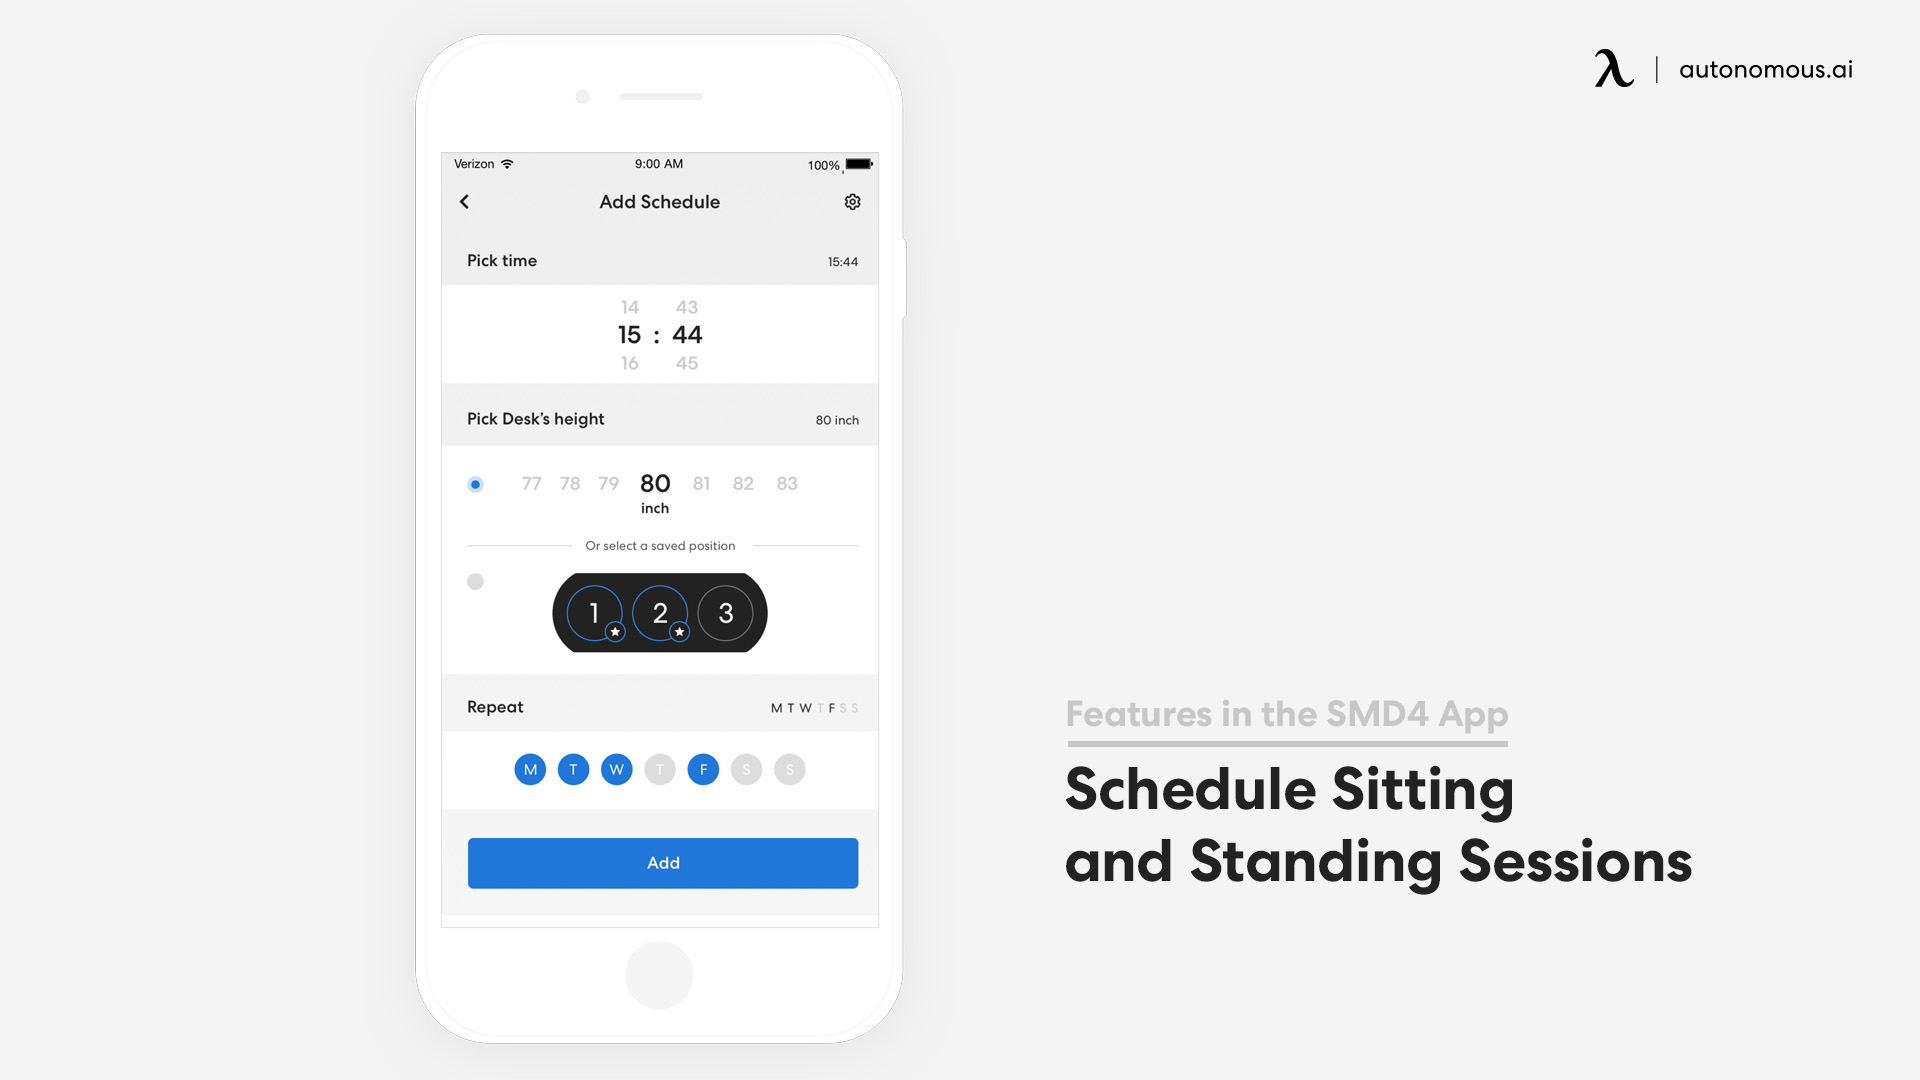 Schedule sitting and standing dessions